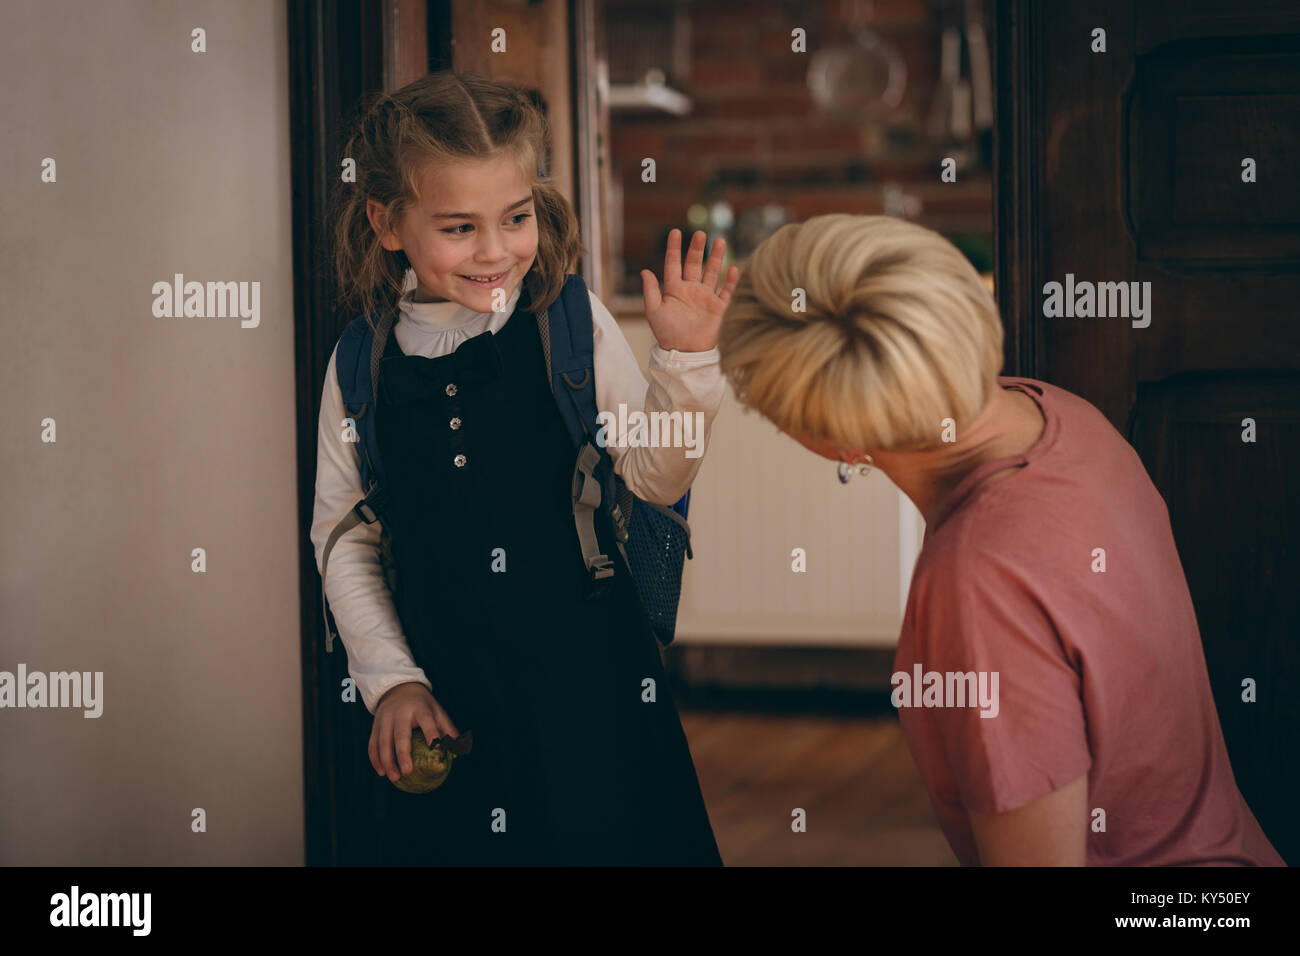 Daughter going to school and saying goodbye to her mother - Stock Image